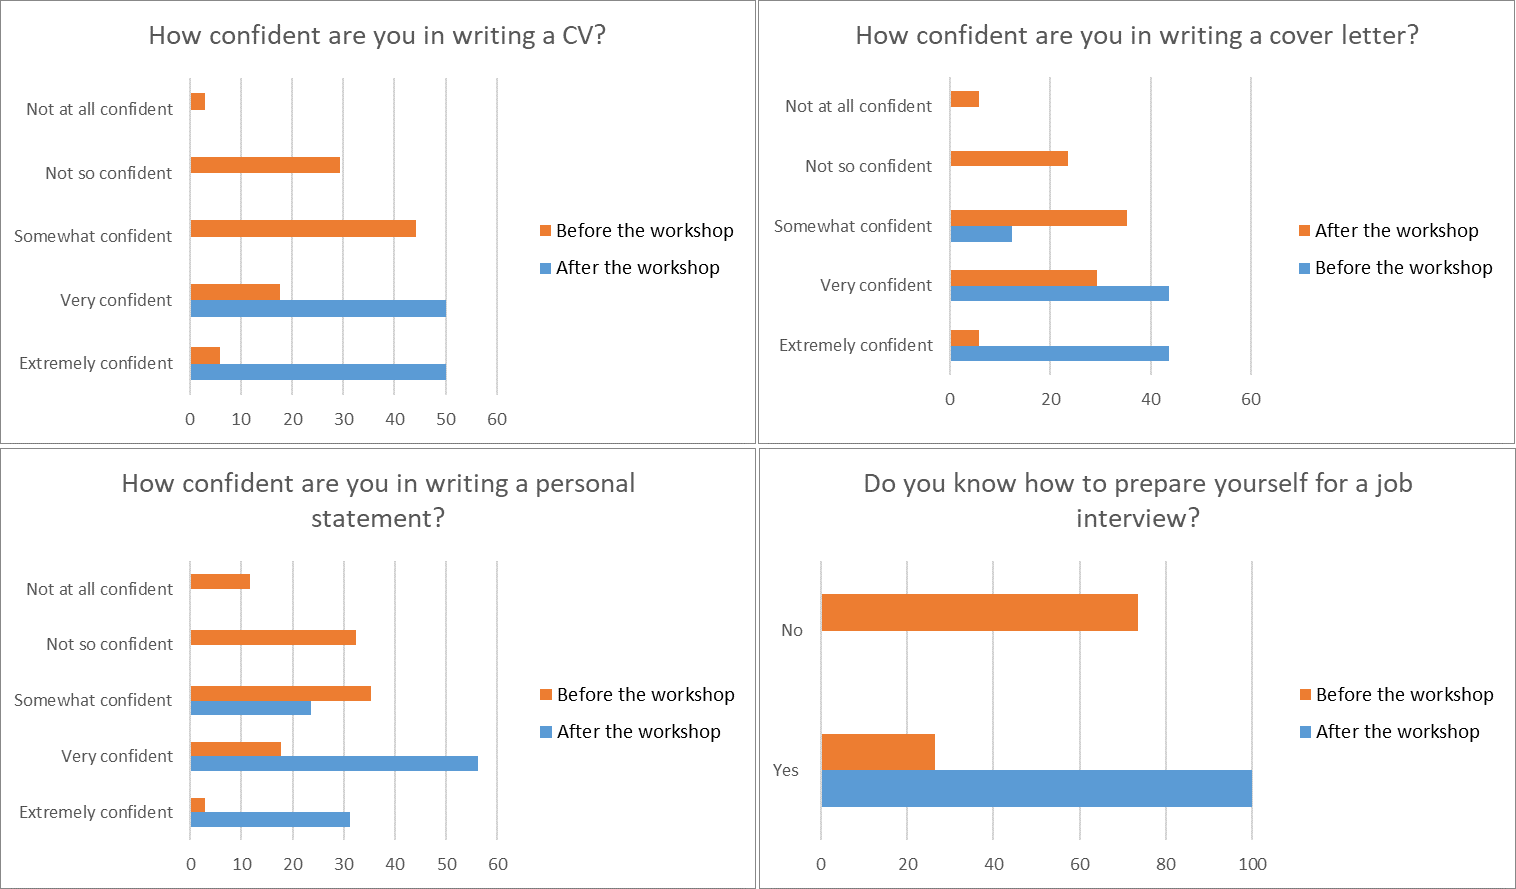 Survey on job skills before and after the workshop on job skills